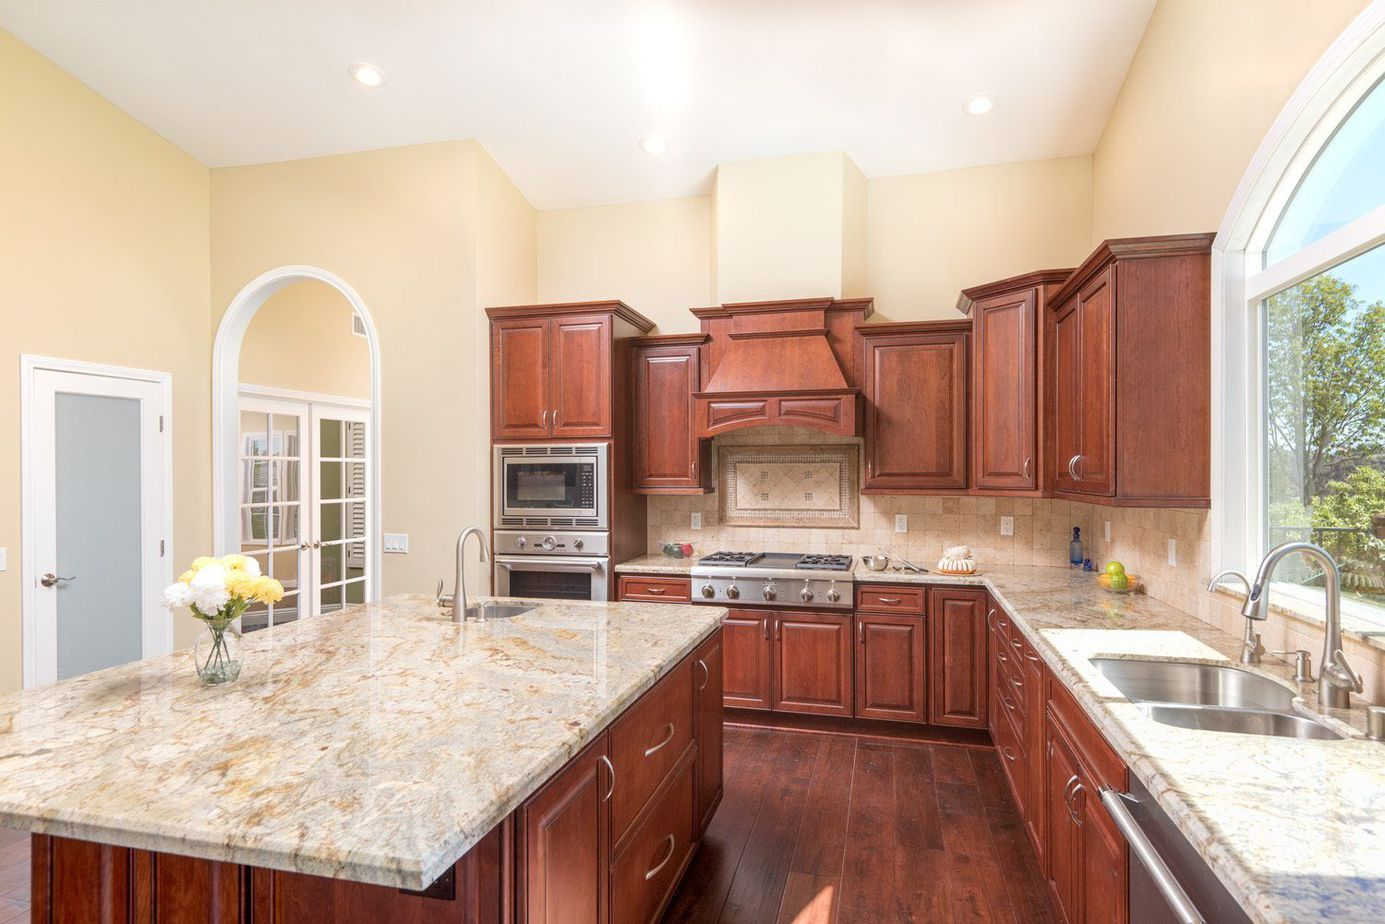 large kitchen remodel in scripps ranch with huge island including a bar sink and mosaic tile over cooktop